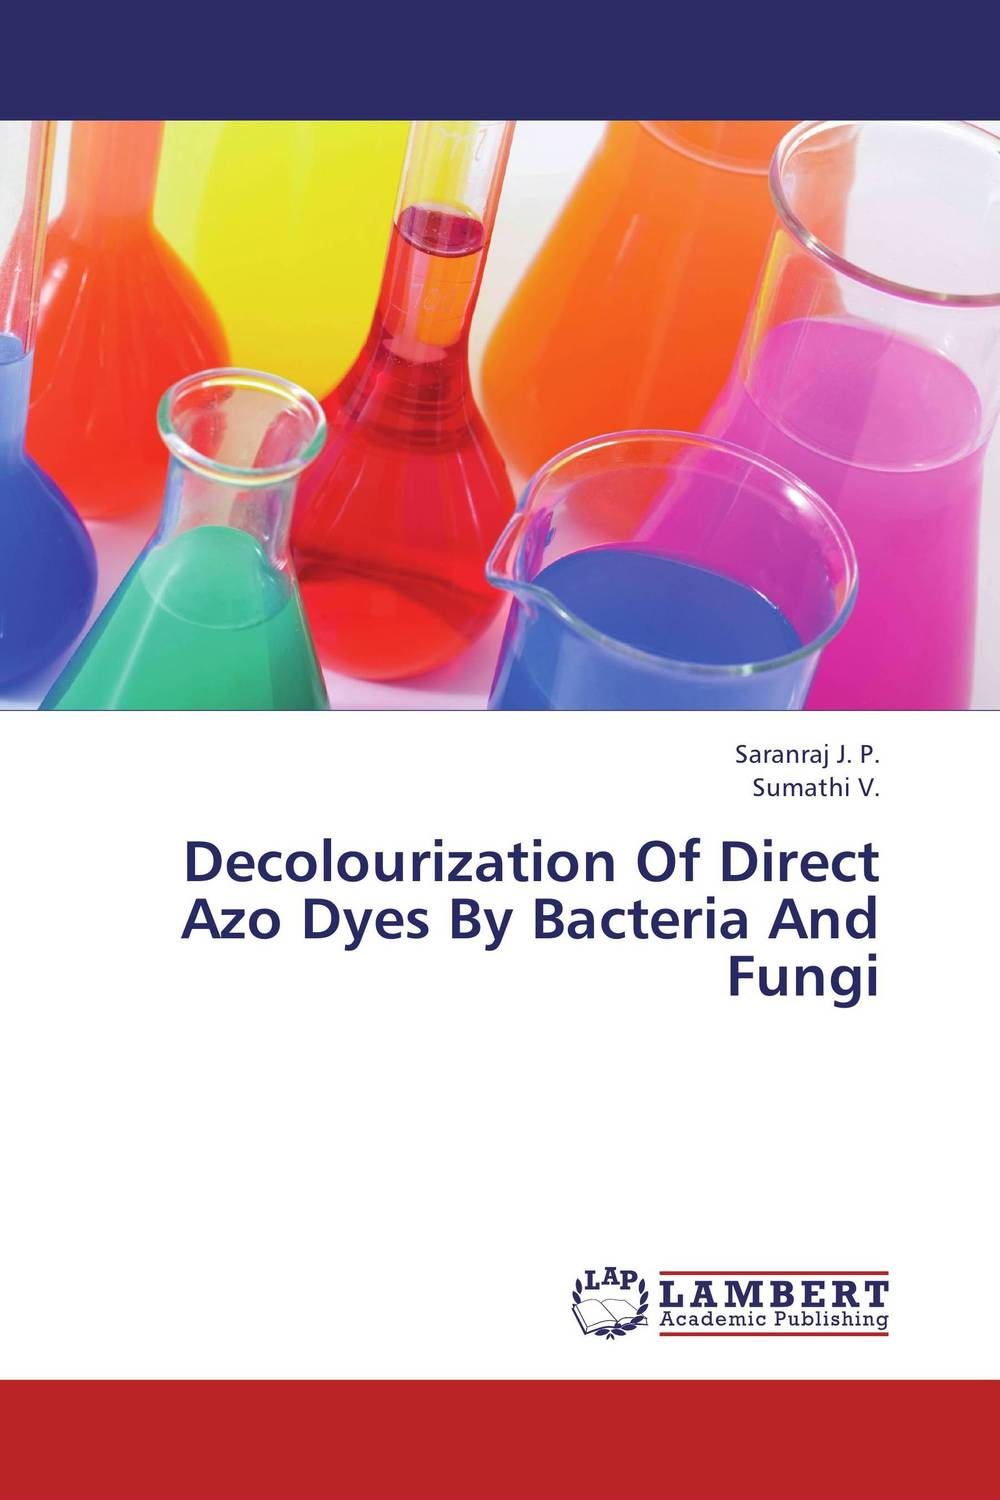 Decolourization Of Direct Azo Dyes By Bacteria And Fungi improved expression of bacterial chia in plant by codon optimisation